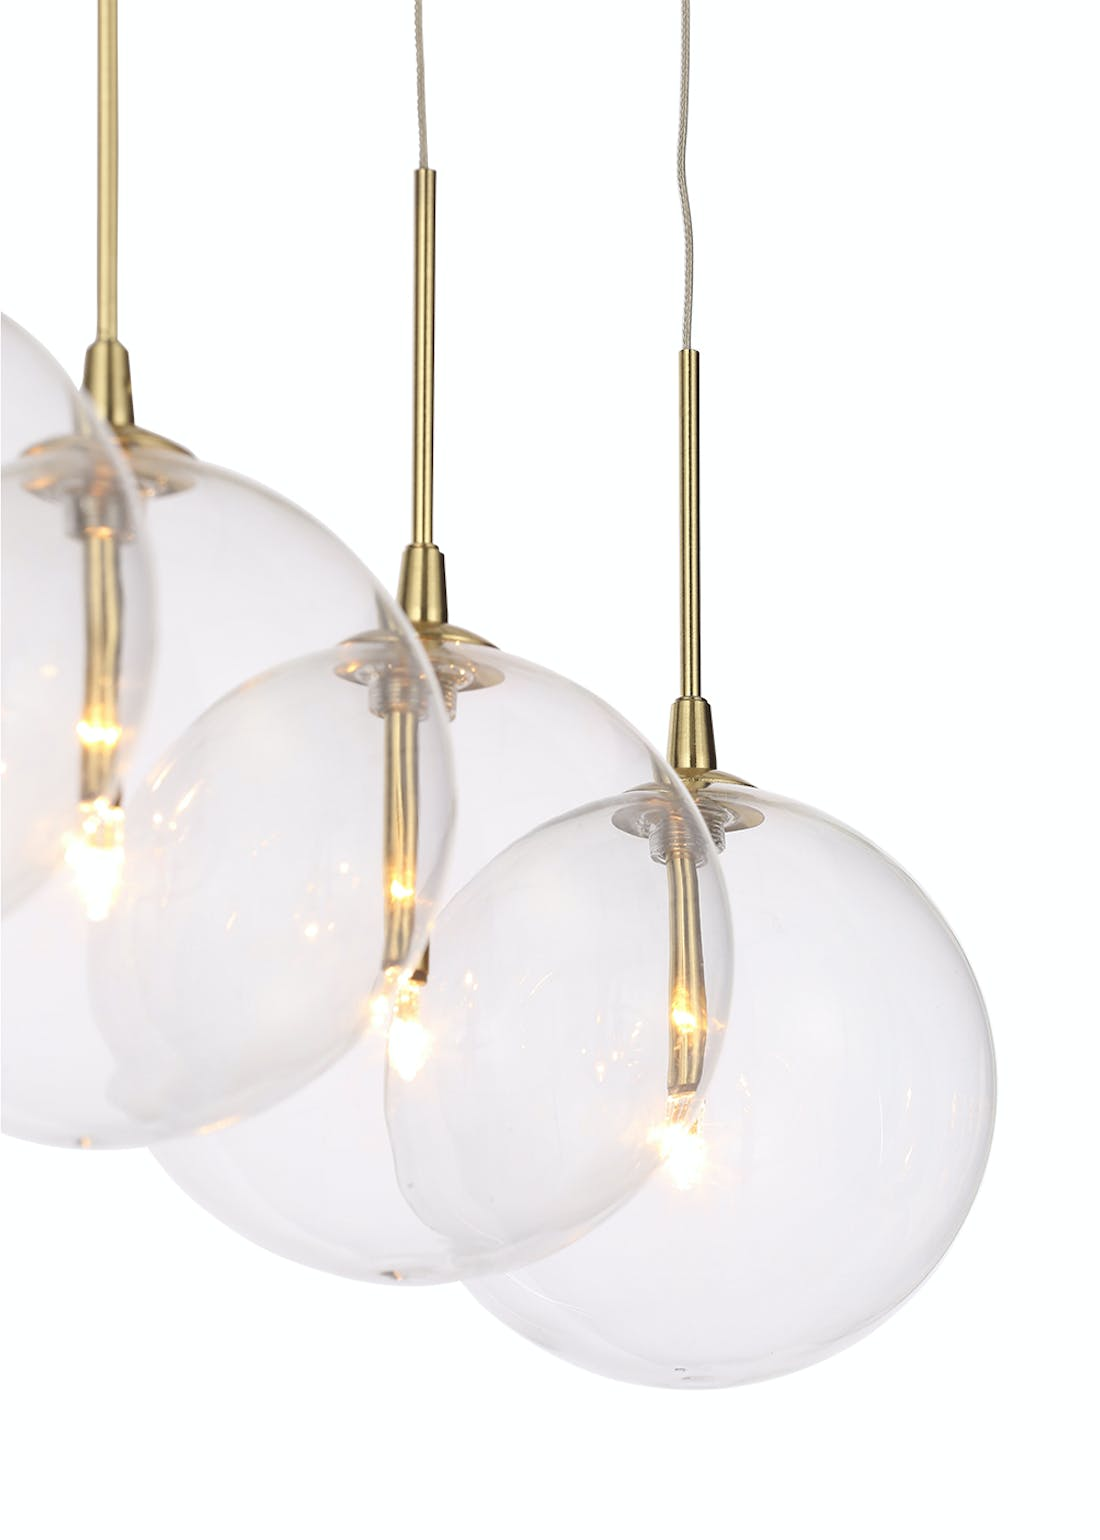 Inlight Byron Pendant Bar Ceiling Light (100cm x 74cm x 20cm)